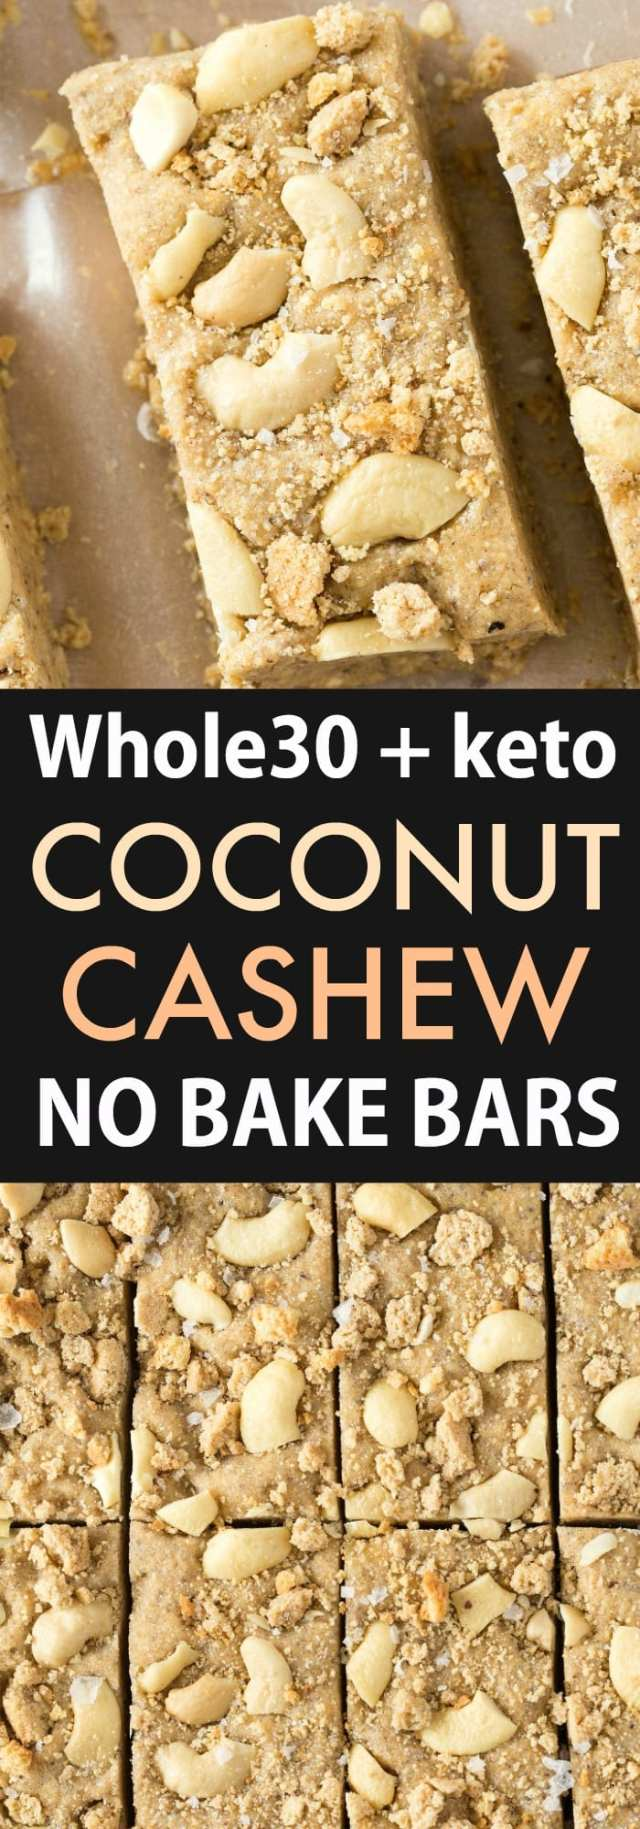 A collage of coconut cashew no bake bars